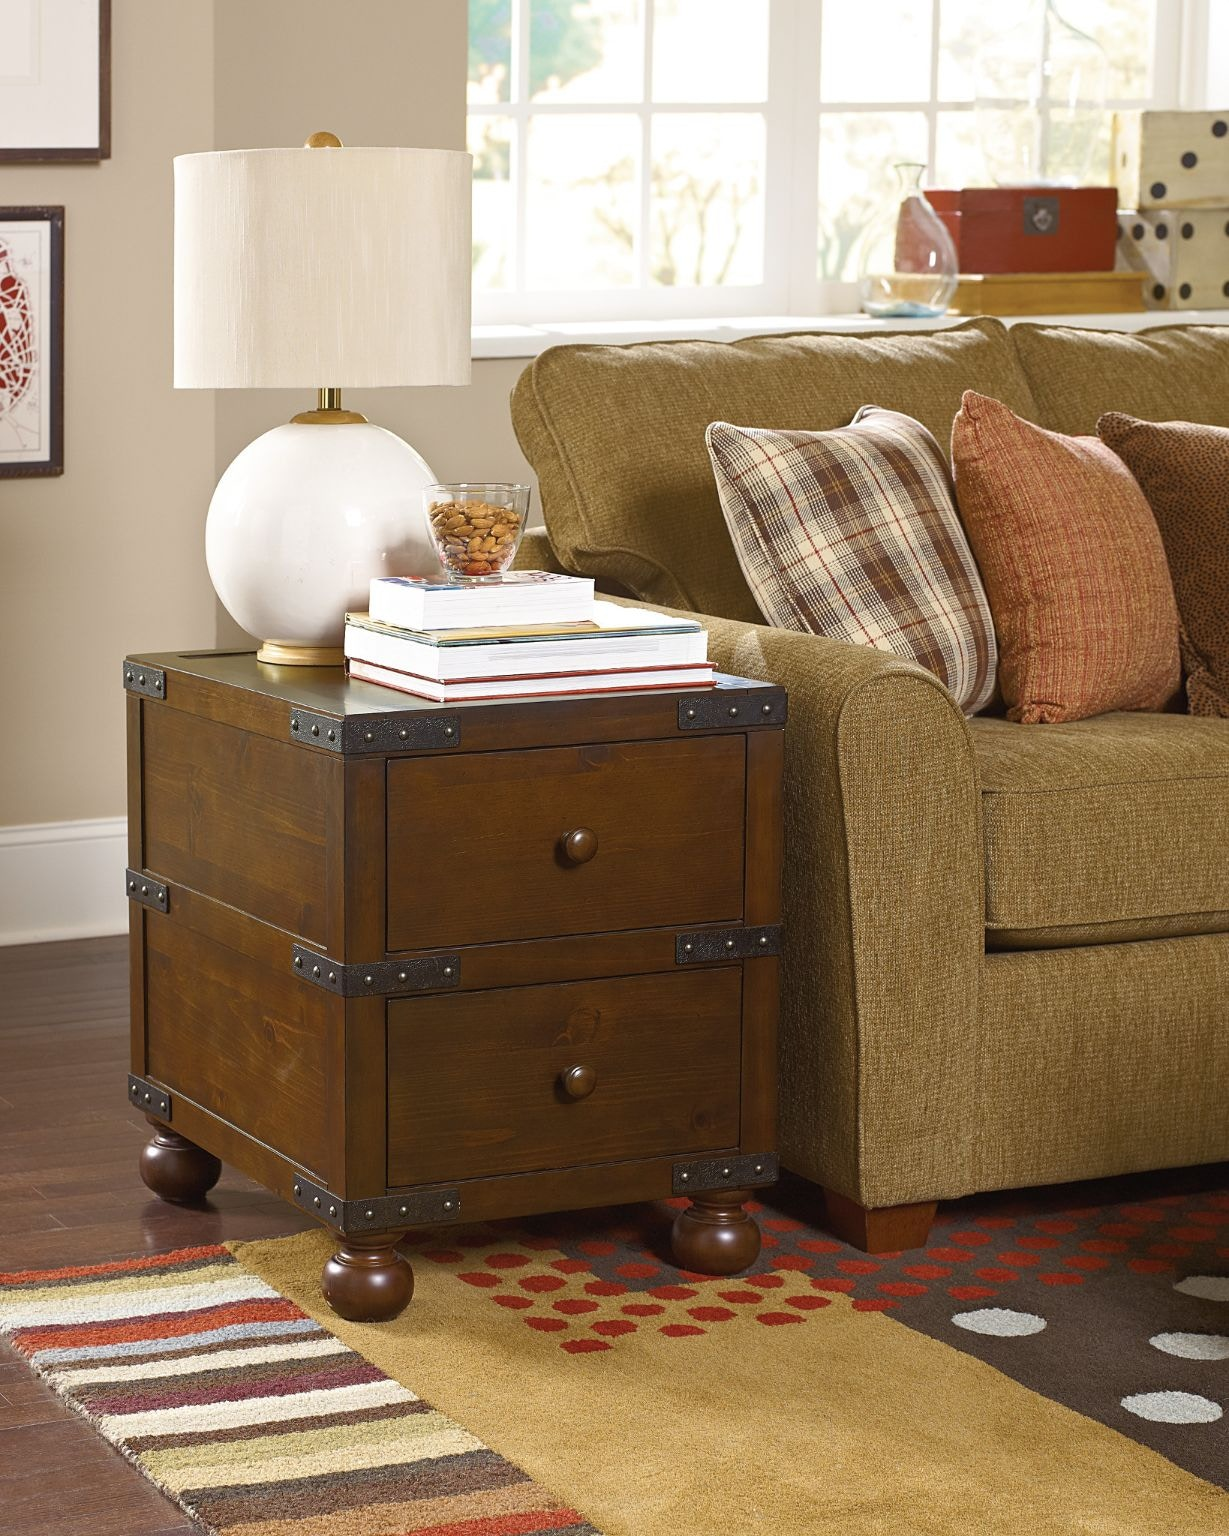 Superieur Hammary Trunk End Table HM090521 From Walter E. Smithe Furniture + Design